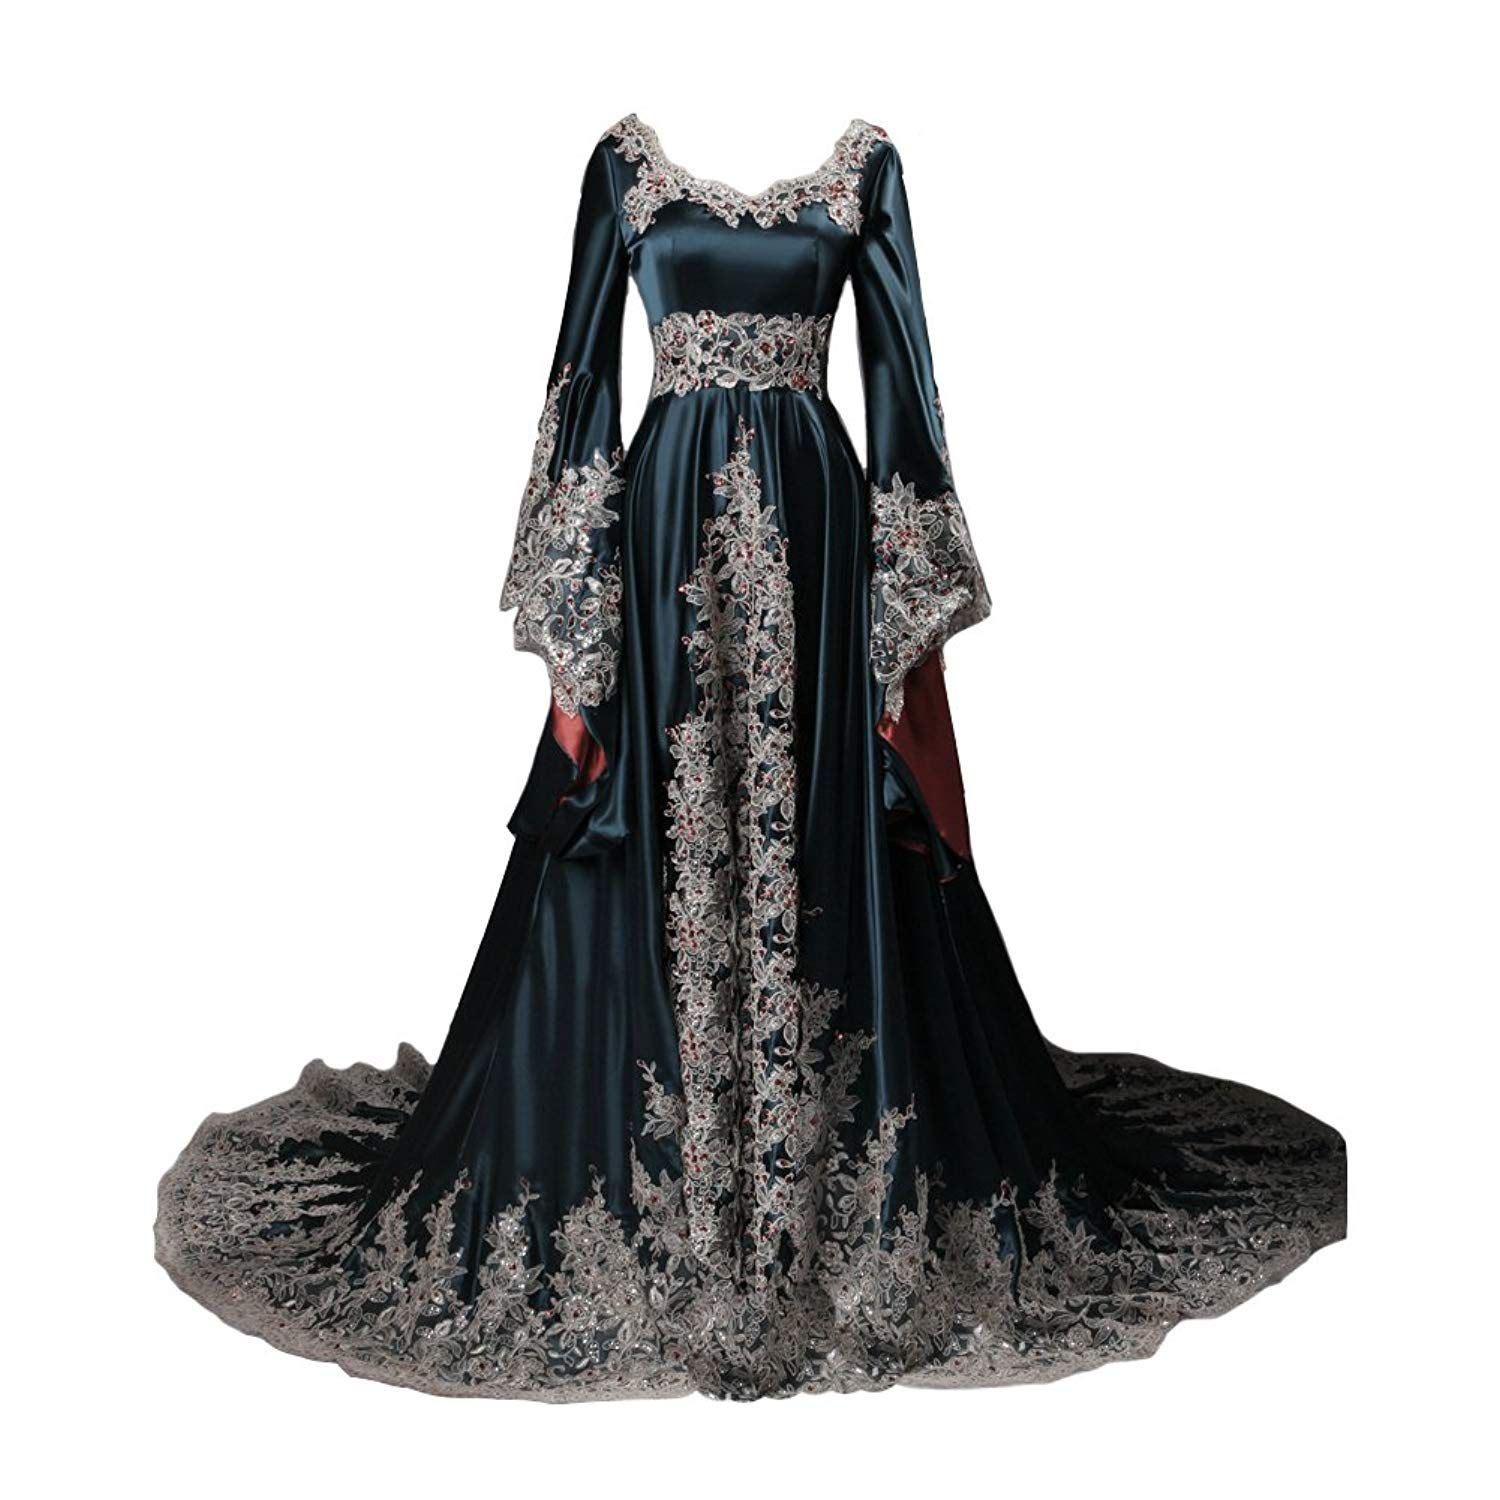 Lemai Vintage Long Sleeves Formal Evening Gowns A Line Women Gothic Dresses Details Can B Long Sleeve Vintage Dresses Gothic Dress Long Sleeve Dress Formal [ 1500 x 1500 Pixel ]